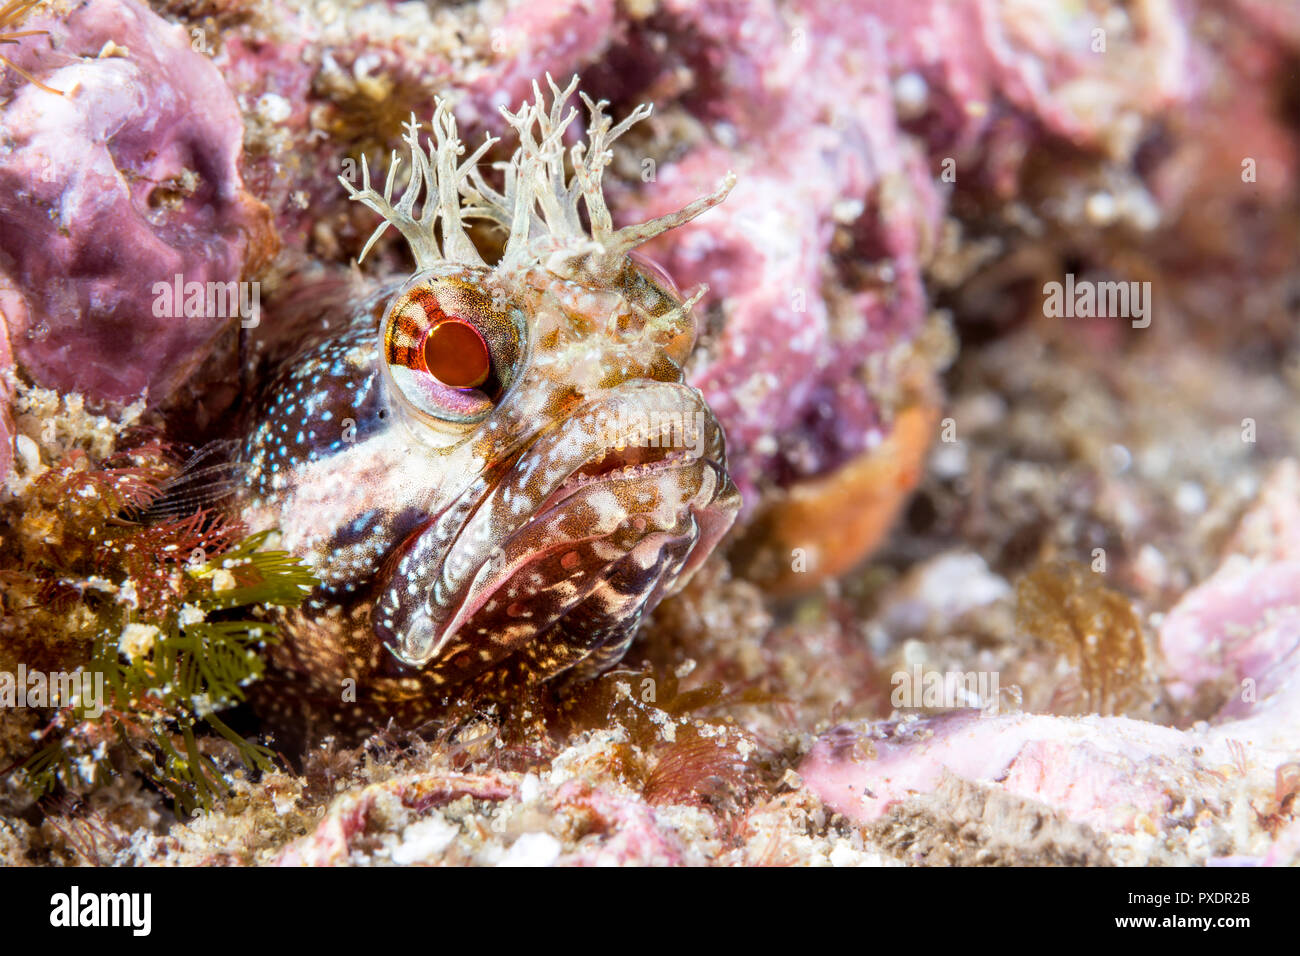 A tiny red fringe head blenny peering out of a small tube for which the fish lives. - Stock Image